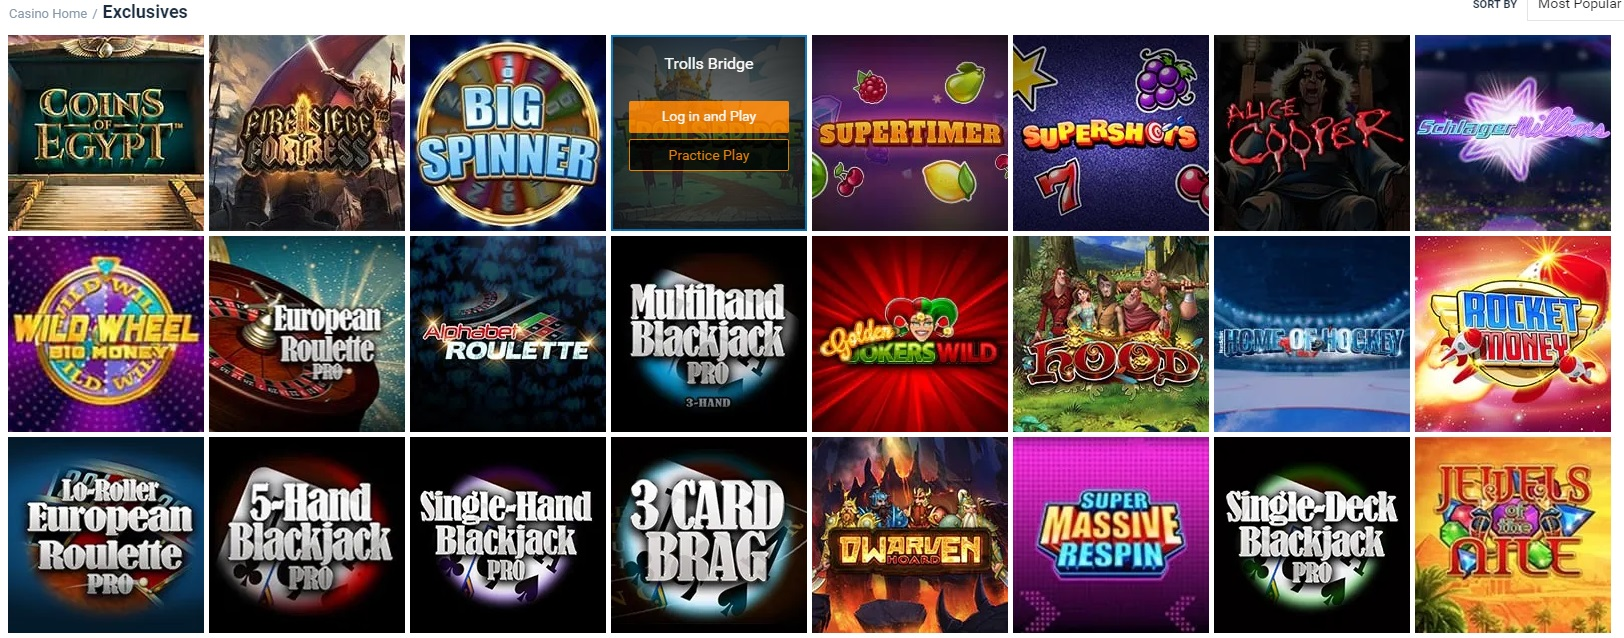 Exclusive Slots at Nordicbet